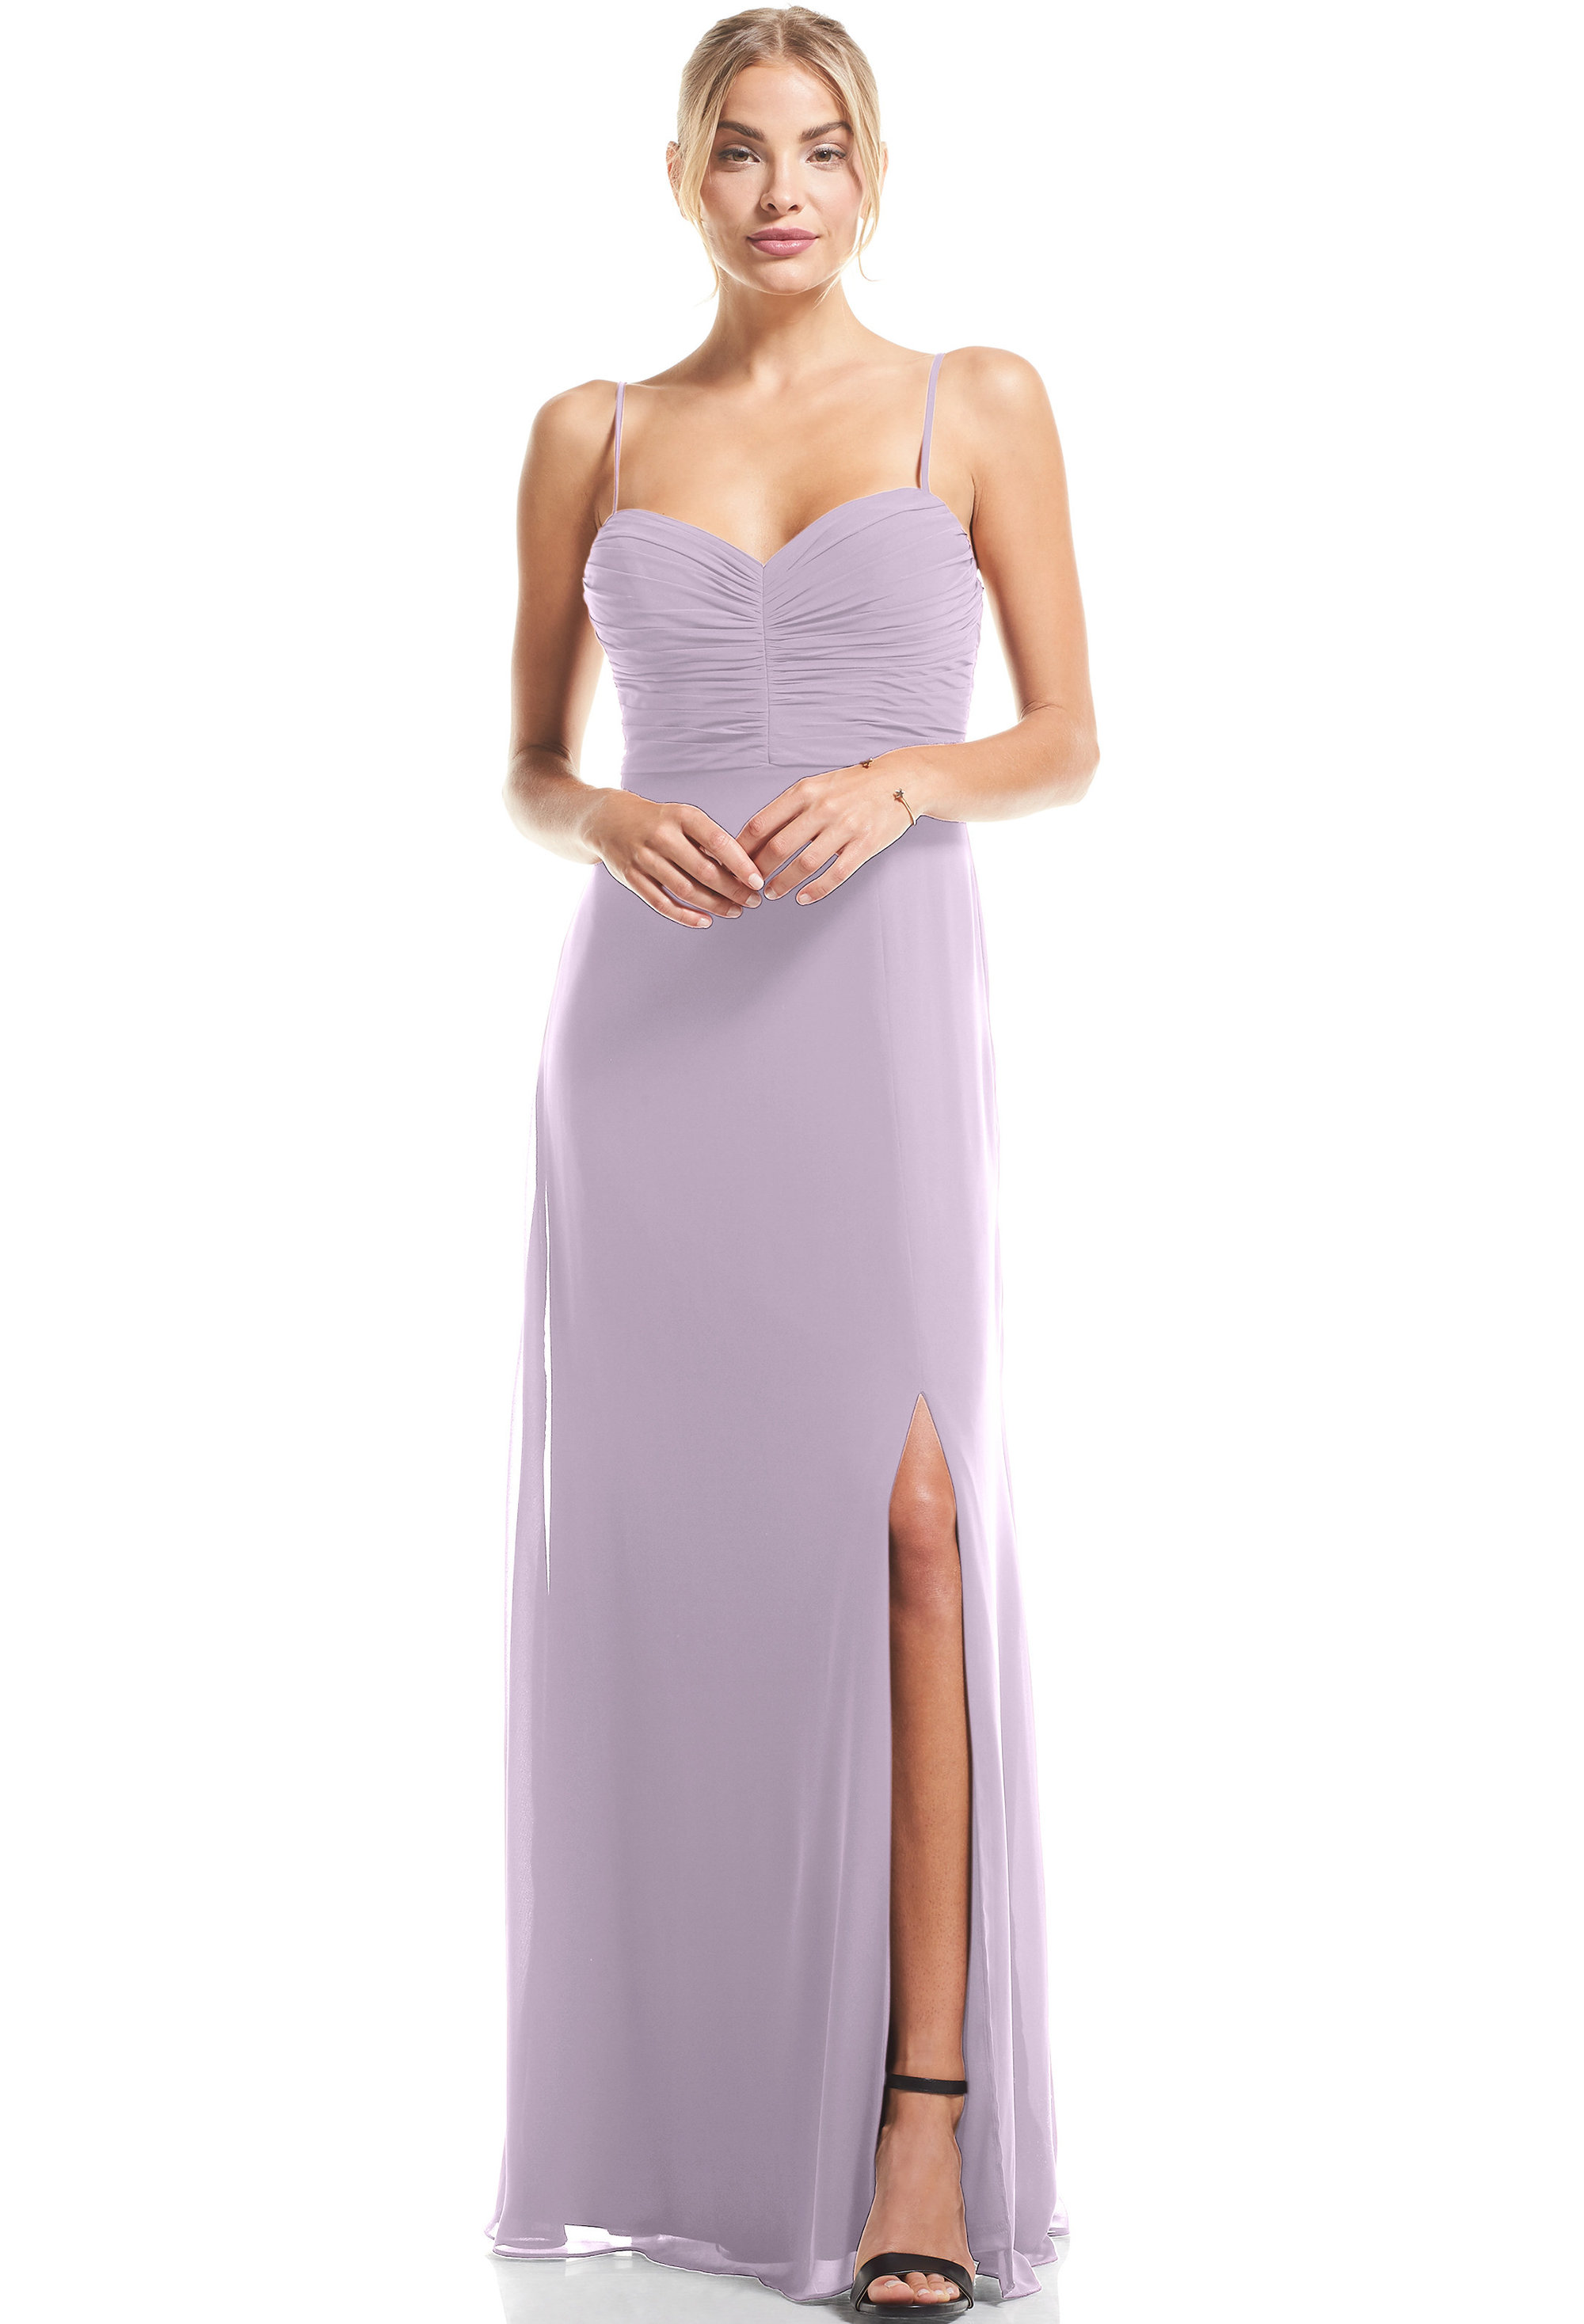 Bill Levkoff VIOLET Chiffon Sweetheart A-Line gown, $79.00 Front